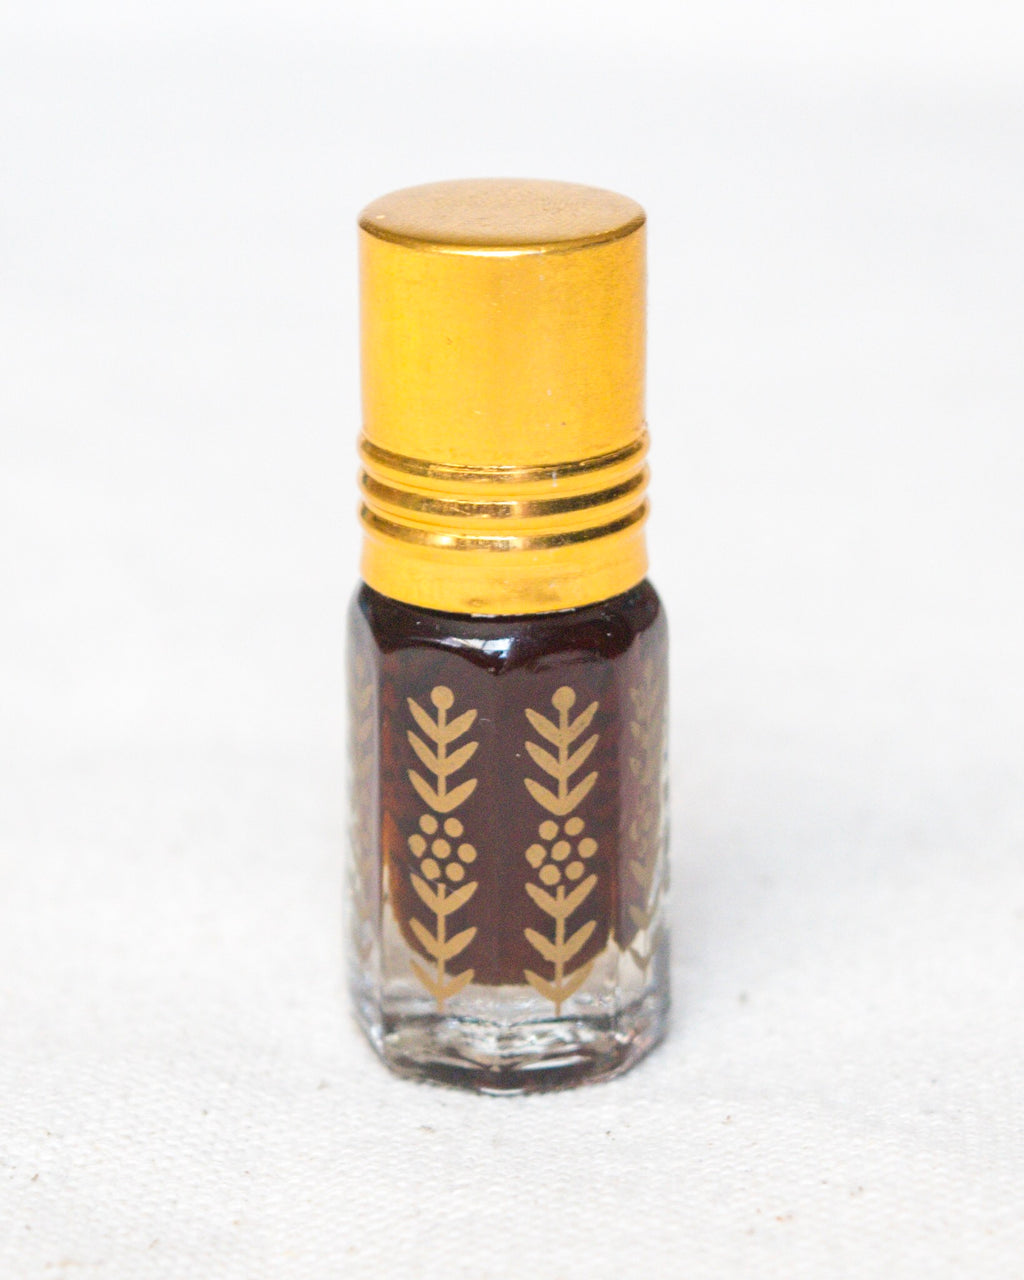 Spirit of Japan | Attar